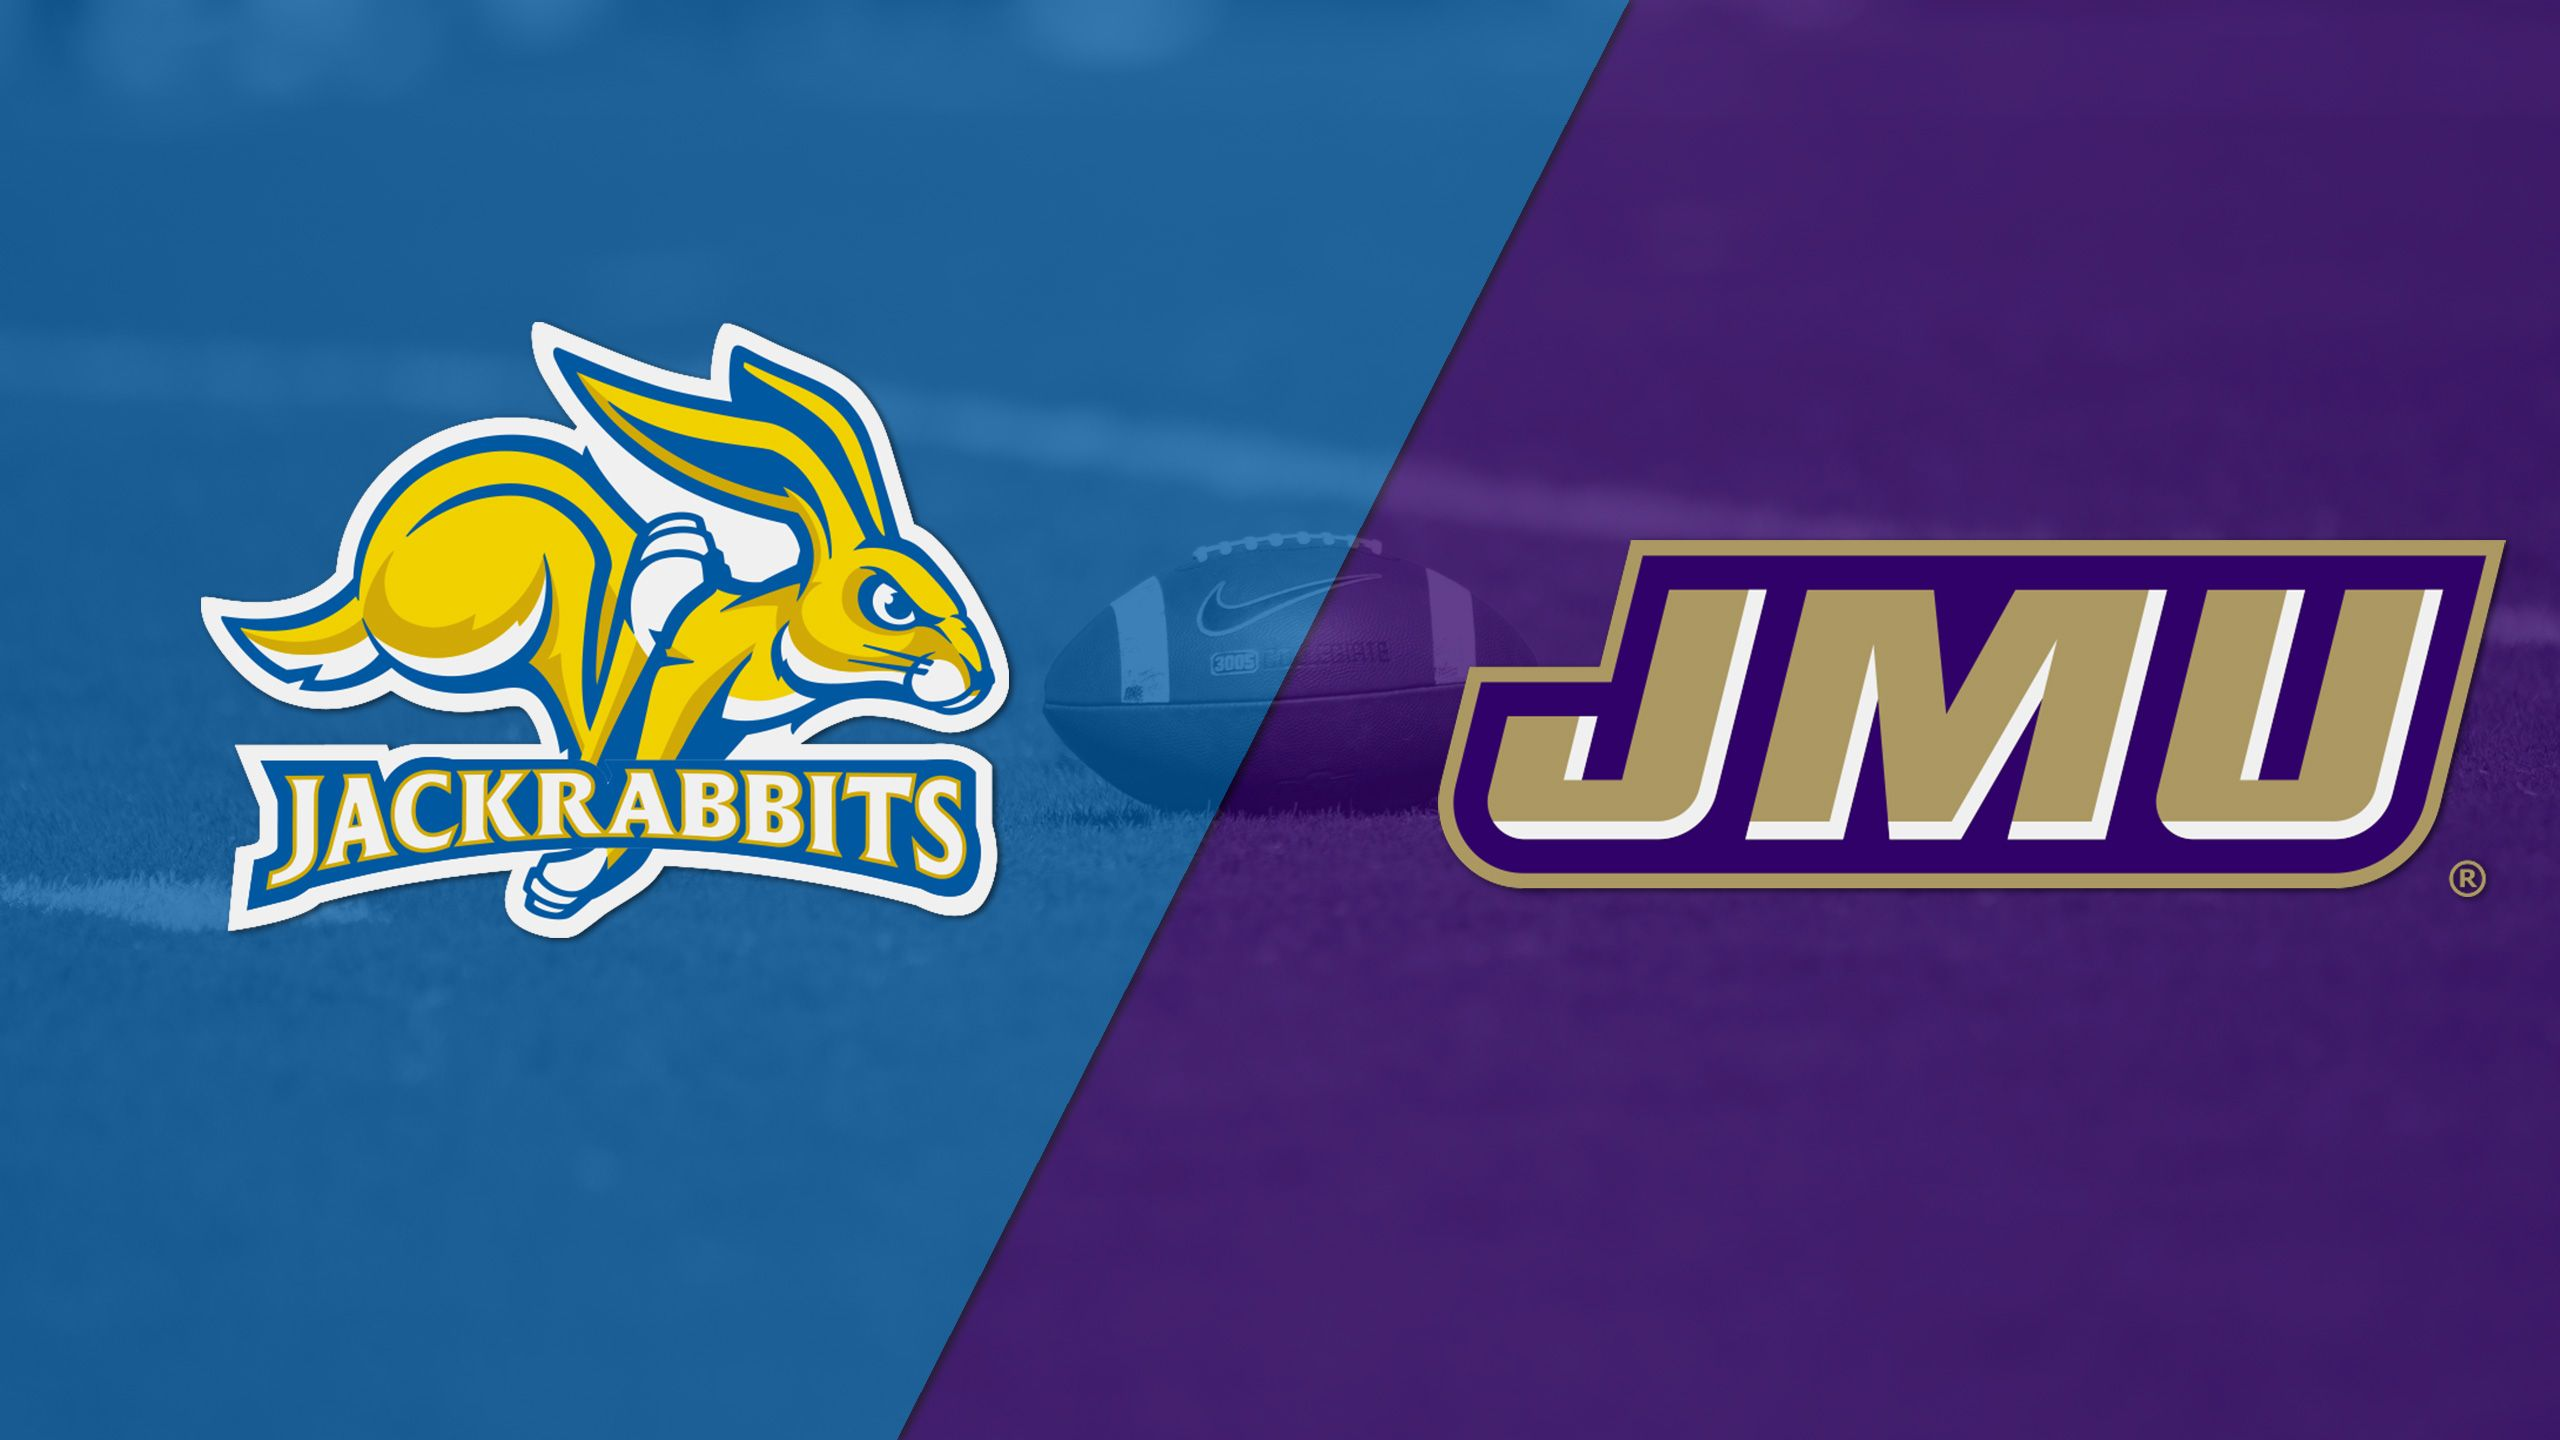 South Dakota State vs. James Madison (Semifinal #2) (NCAA Division I FCS Football Championship)